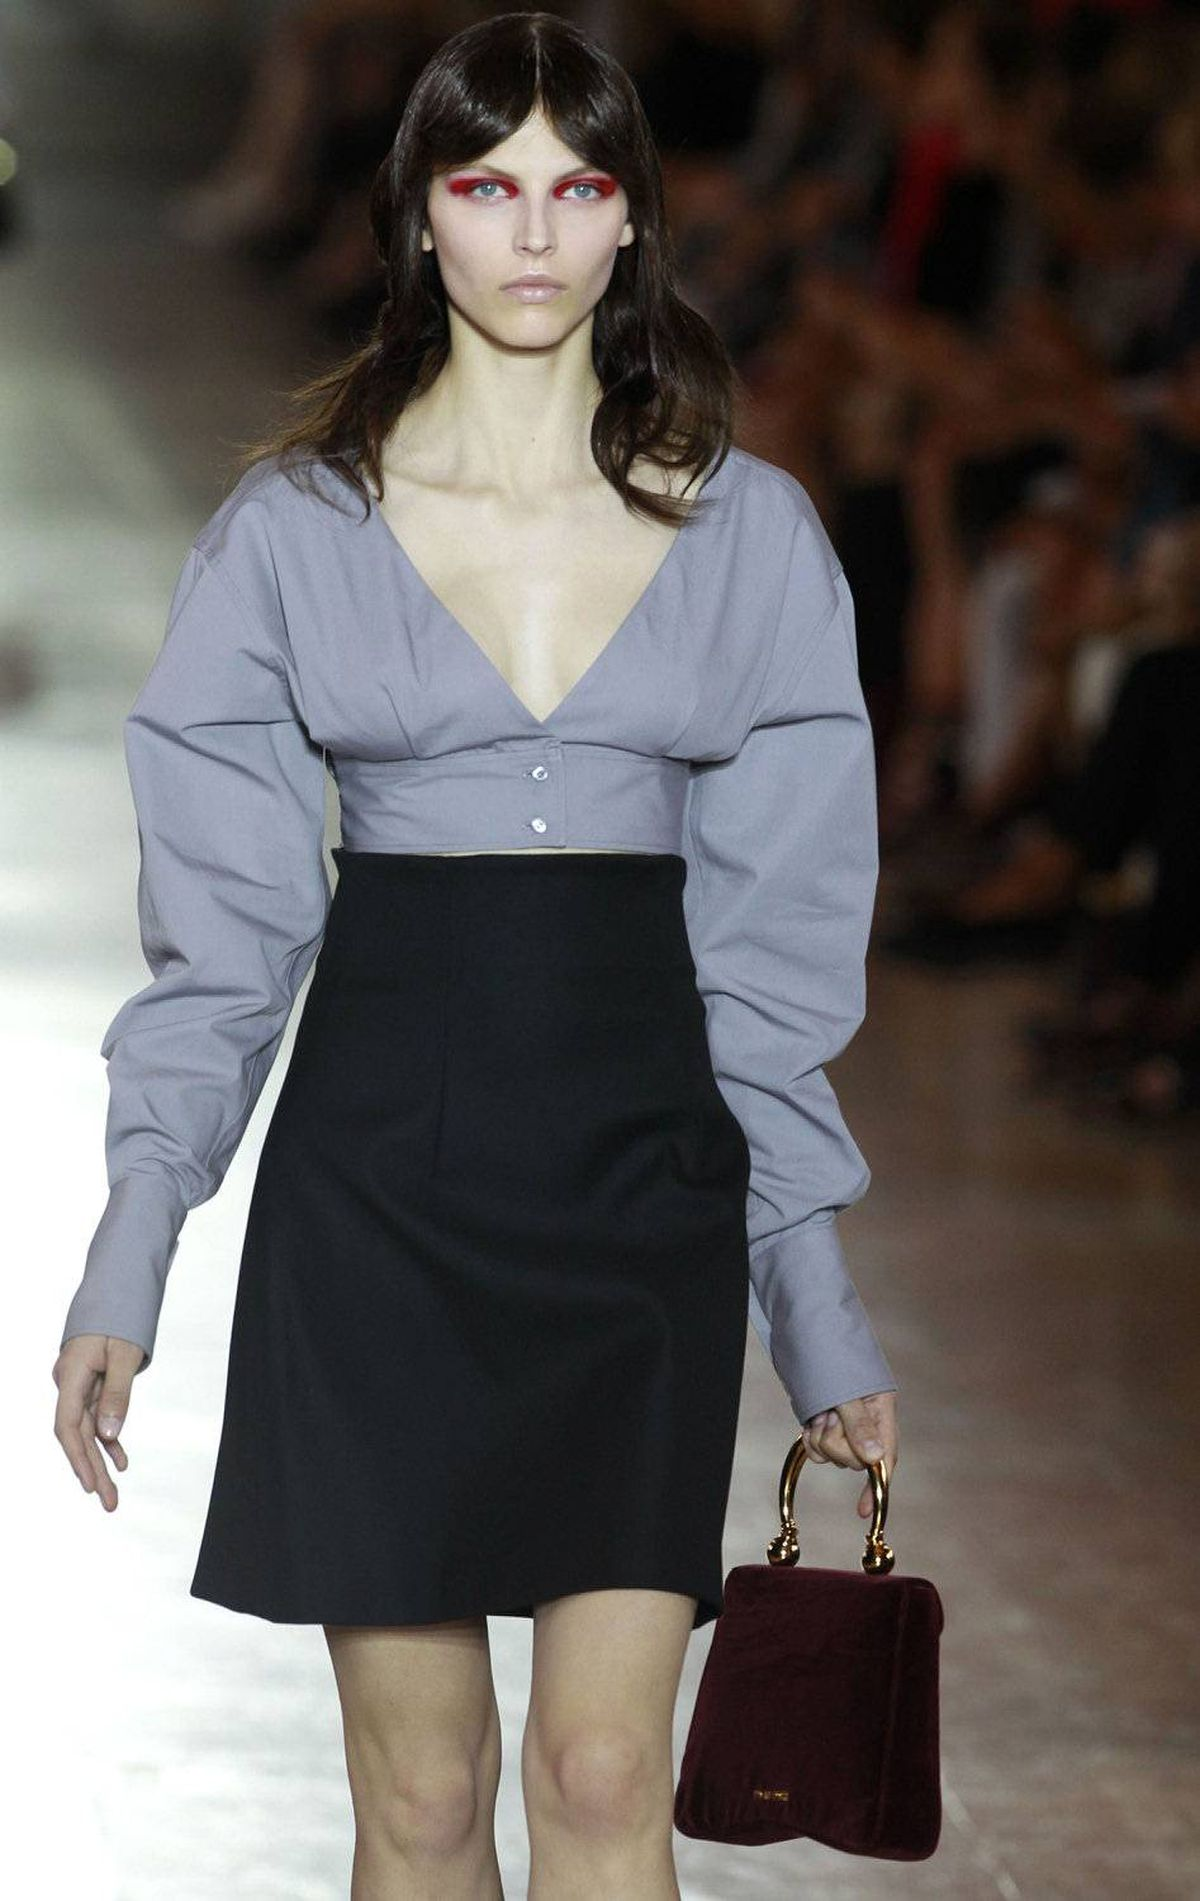 A model presents a creation by designer Miuccia Prada for Italian fashion house Miu Miu as part of its spring/summer 2012 women's ready-to-wear fashion show in Paris, October 5, 2011.